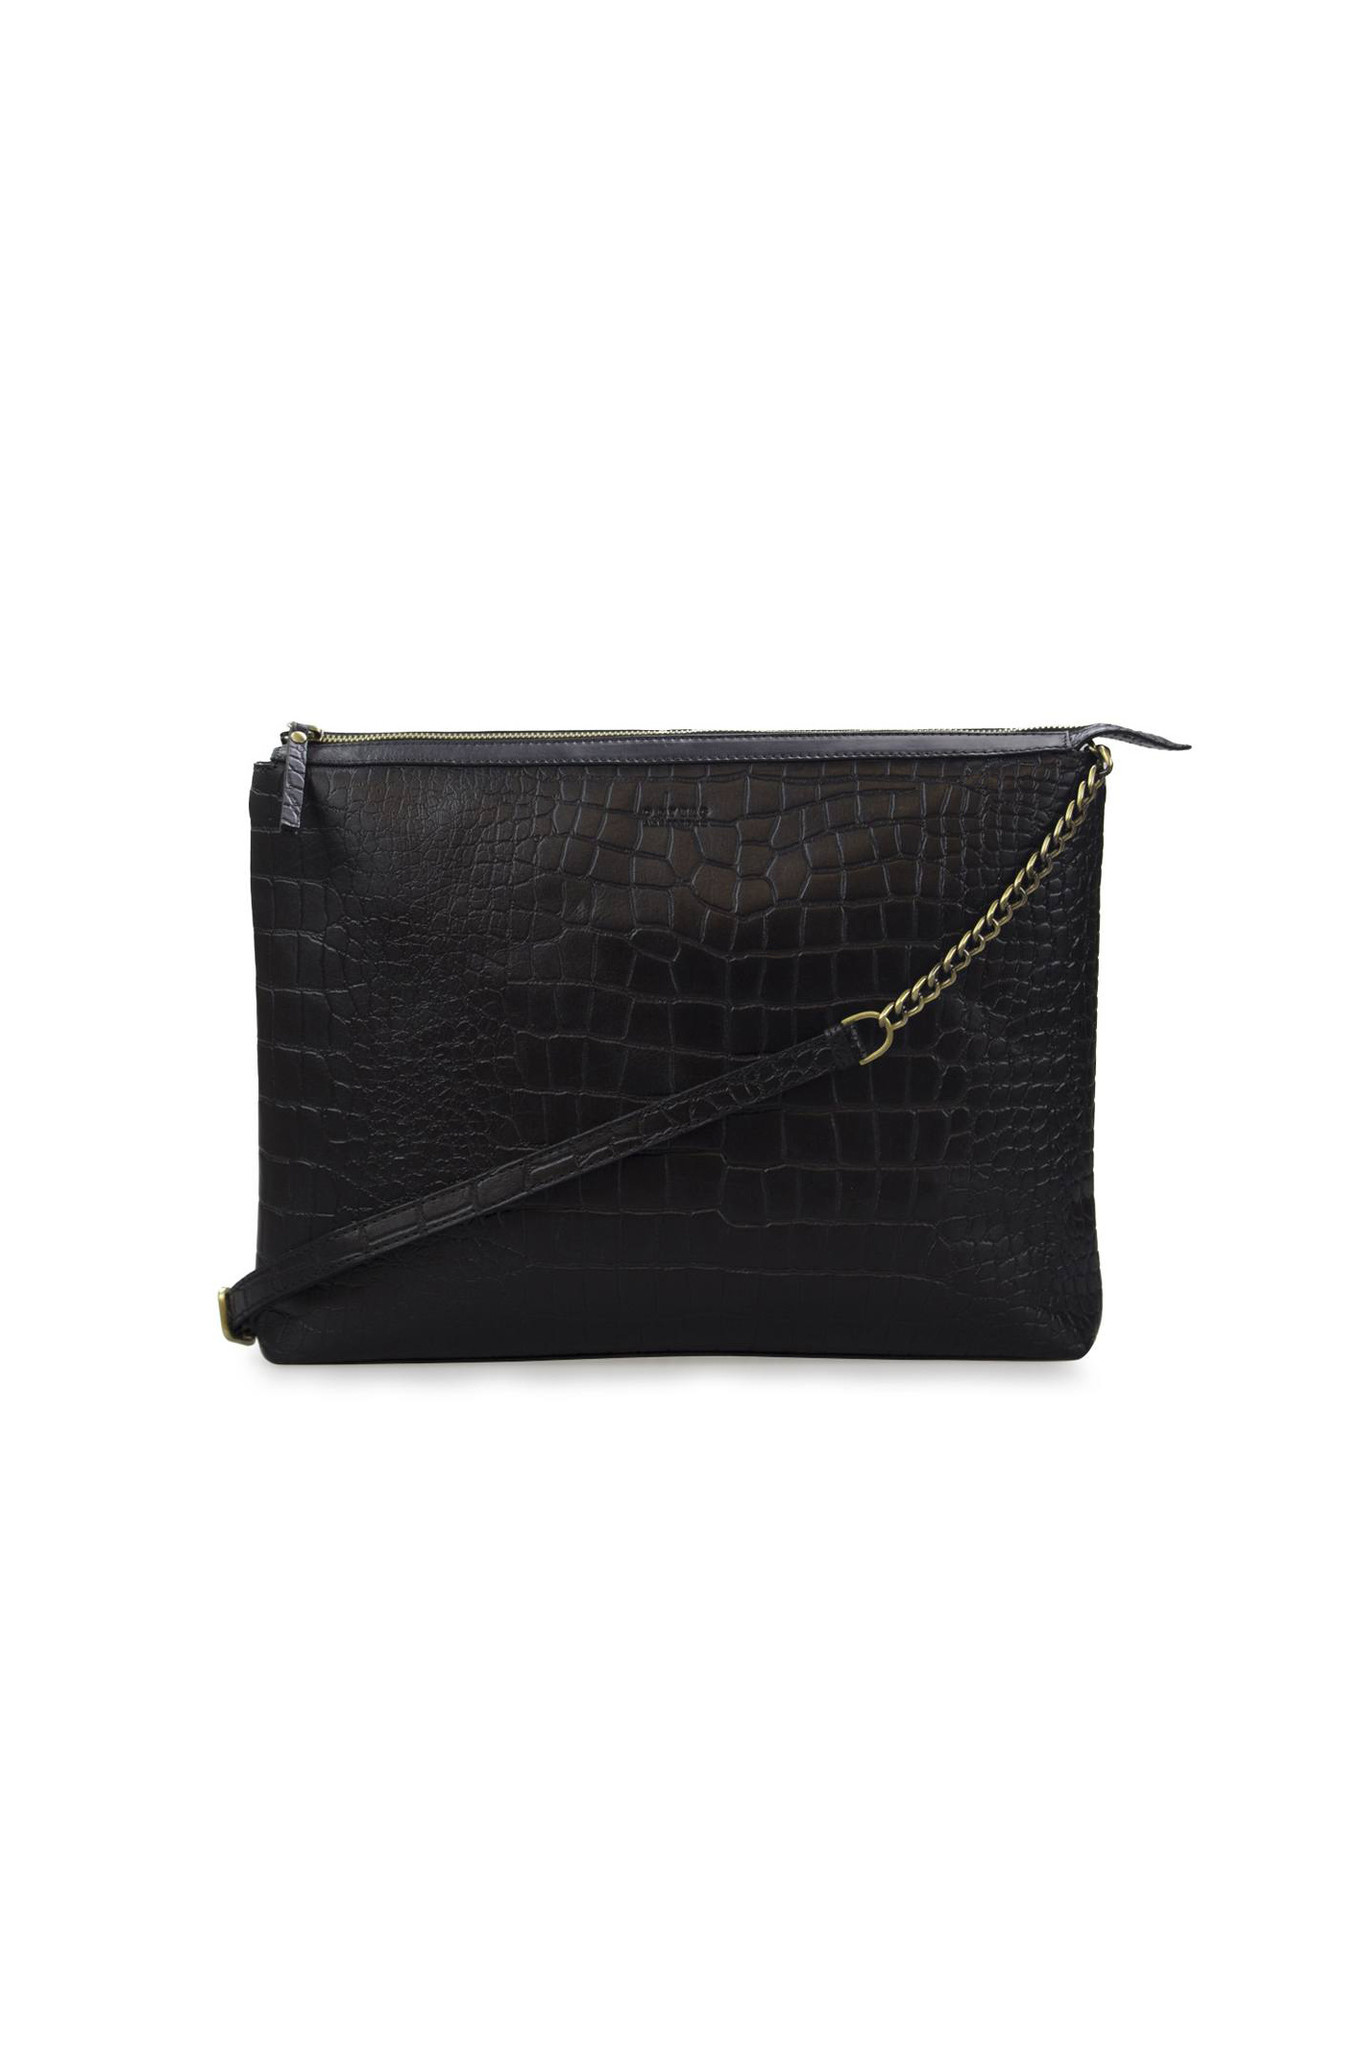 Scarlet Bag - Black Croco Classic Leather-1